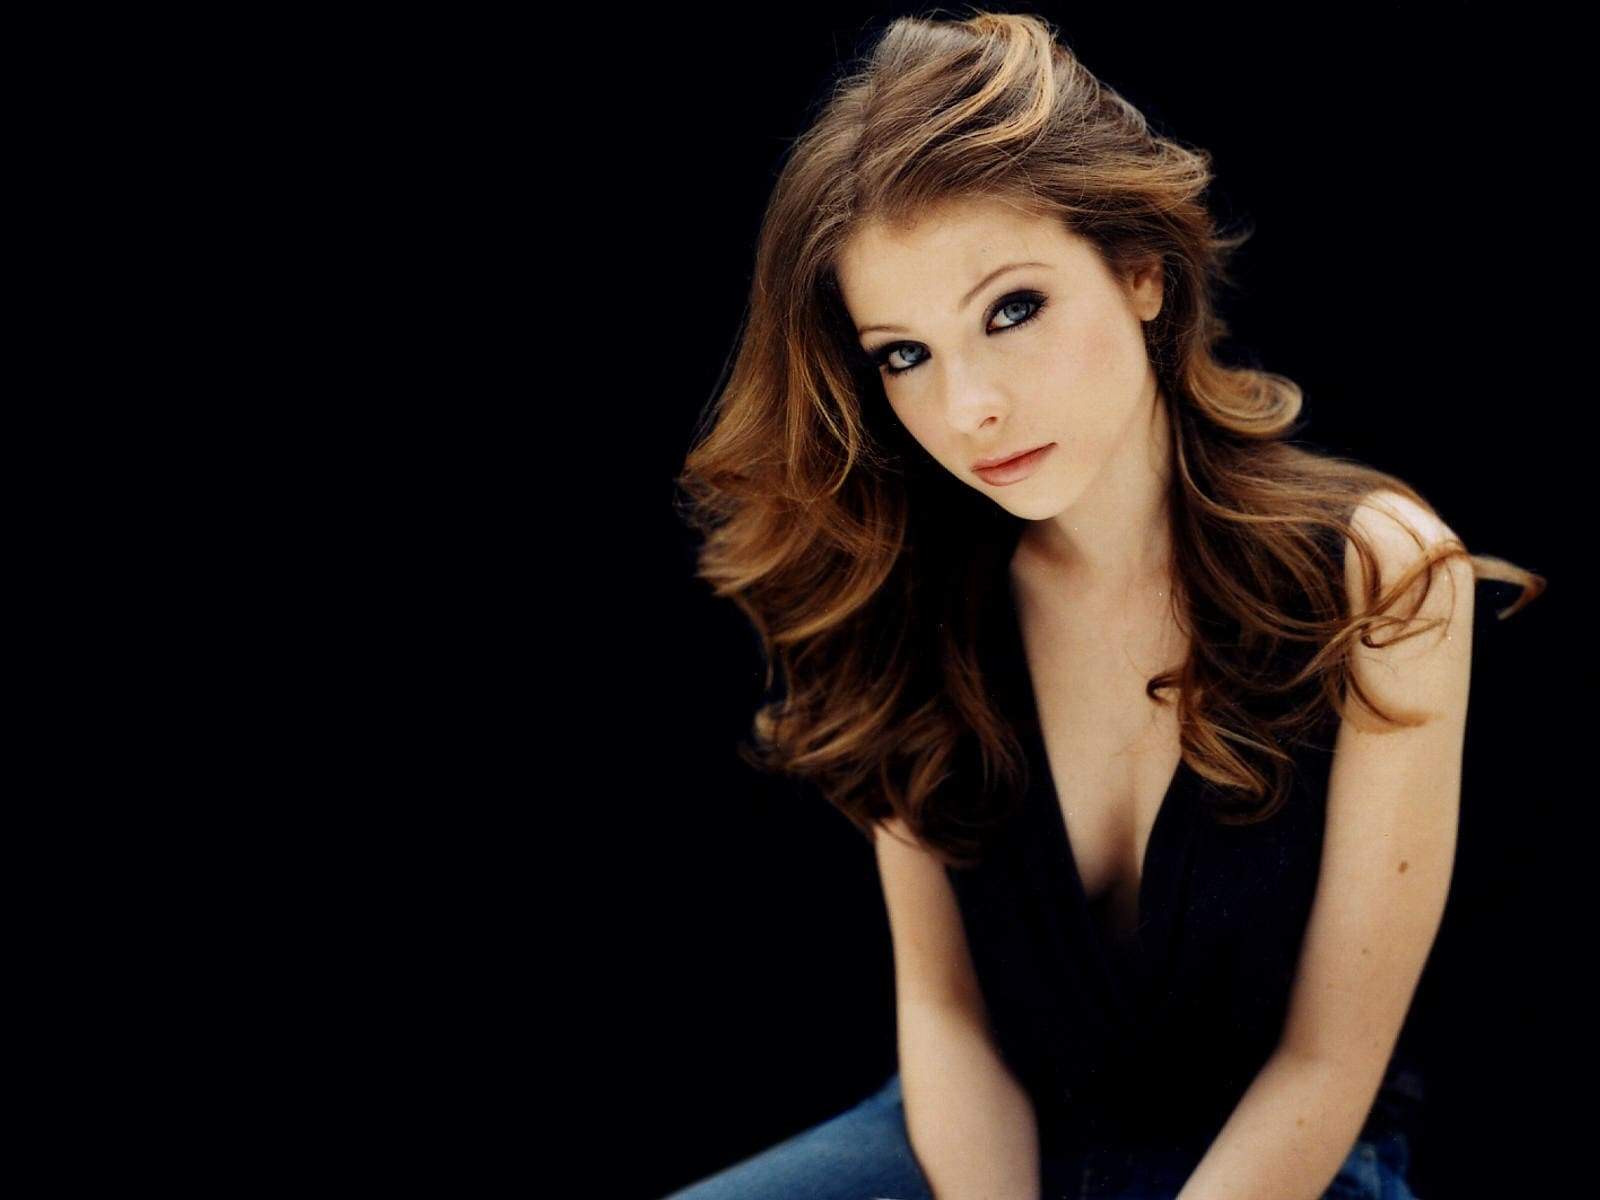 Michelle Trachtenberg Wallpapers hd